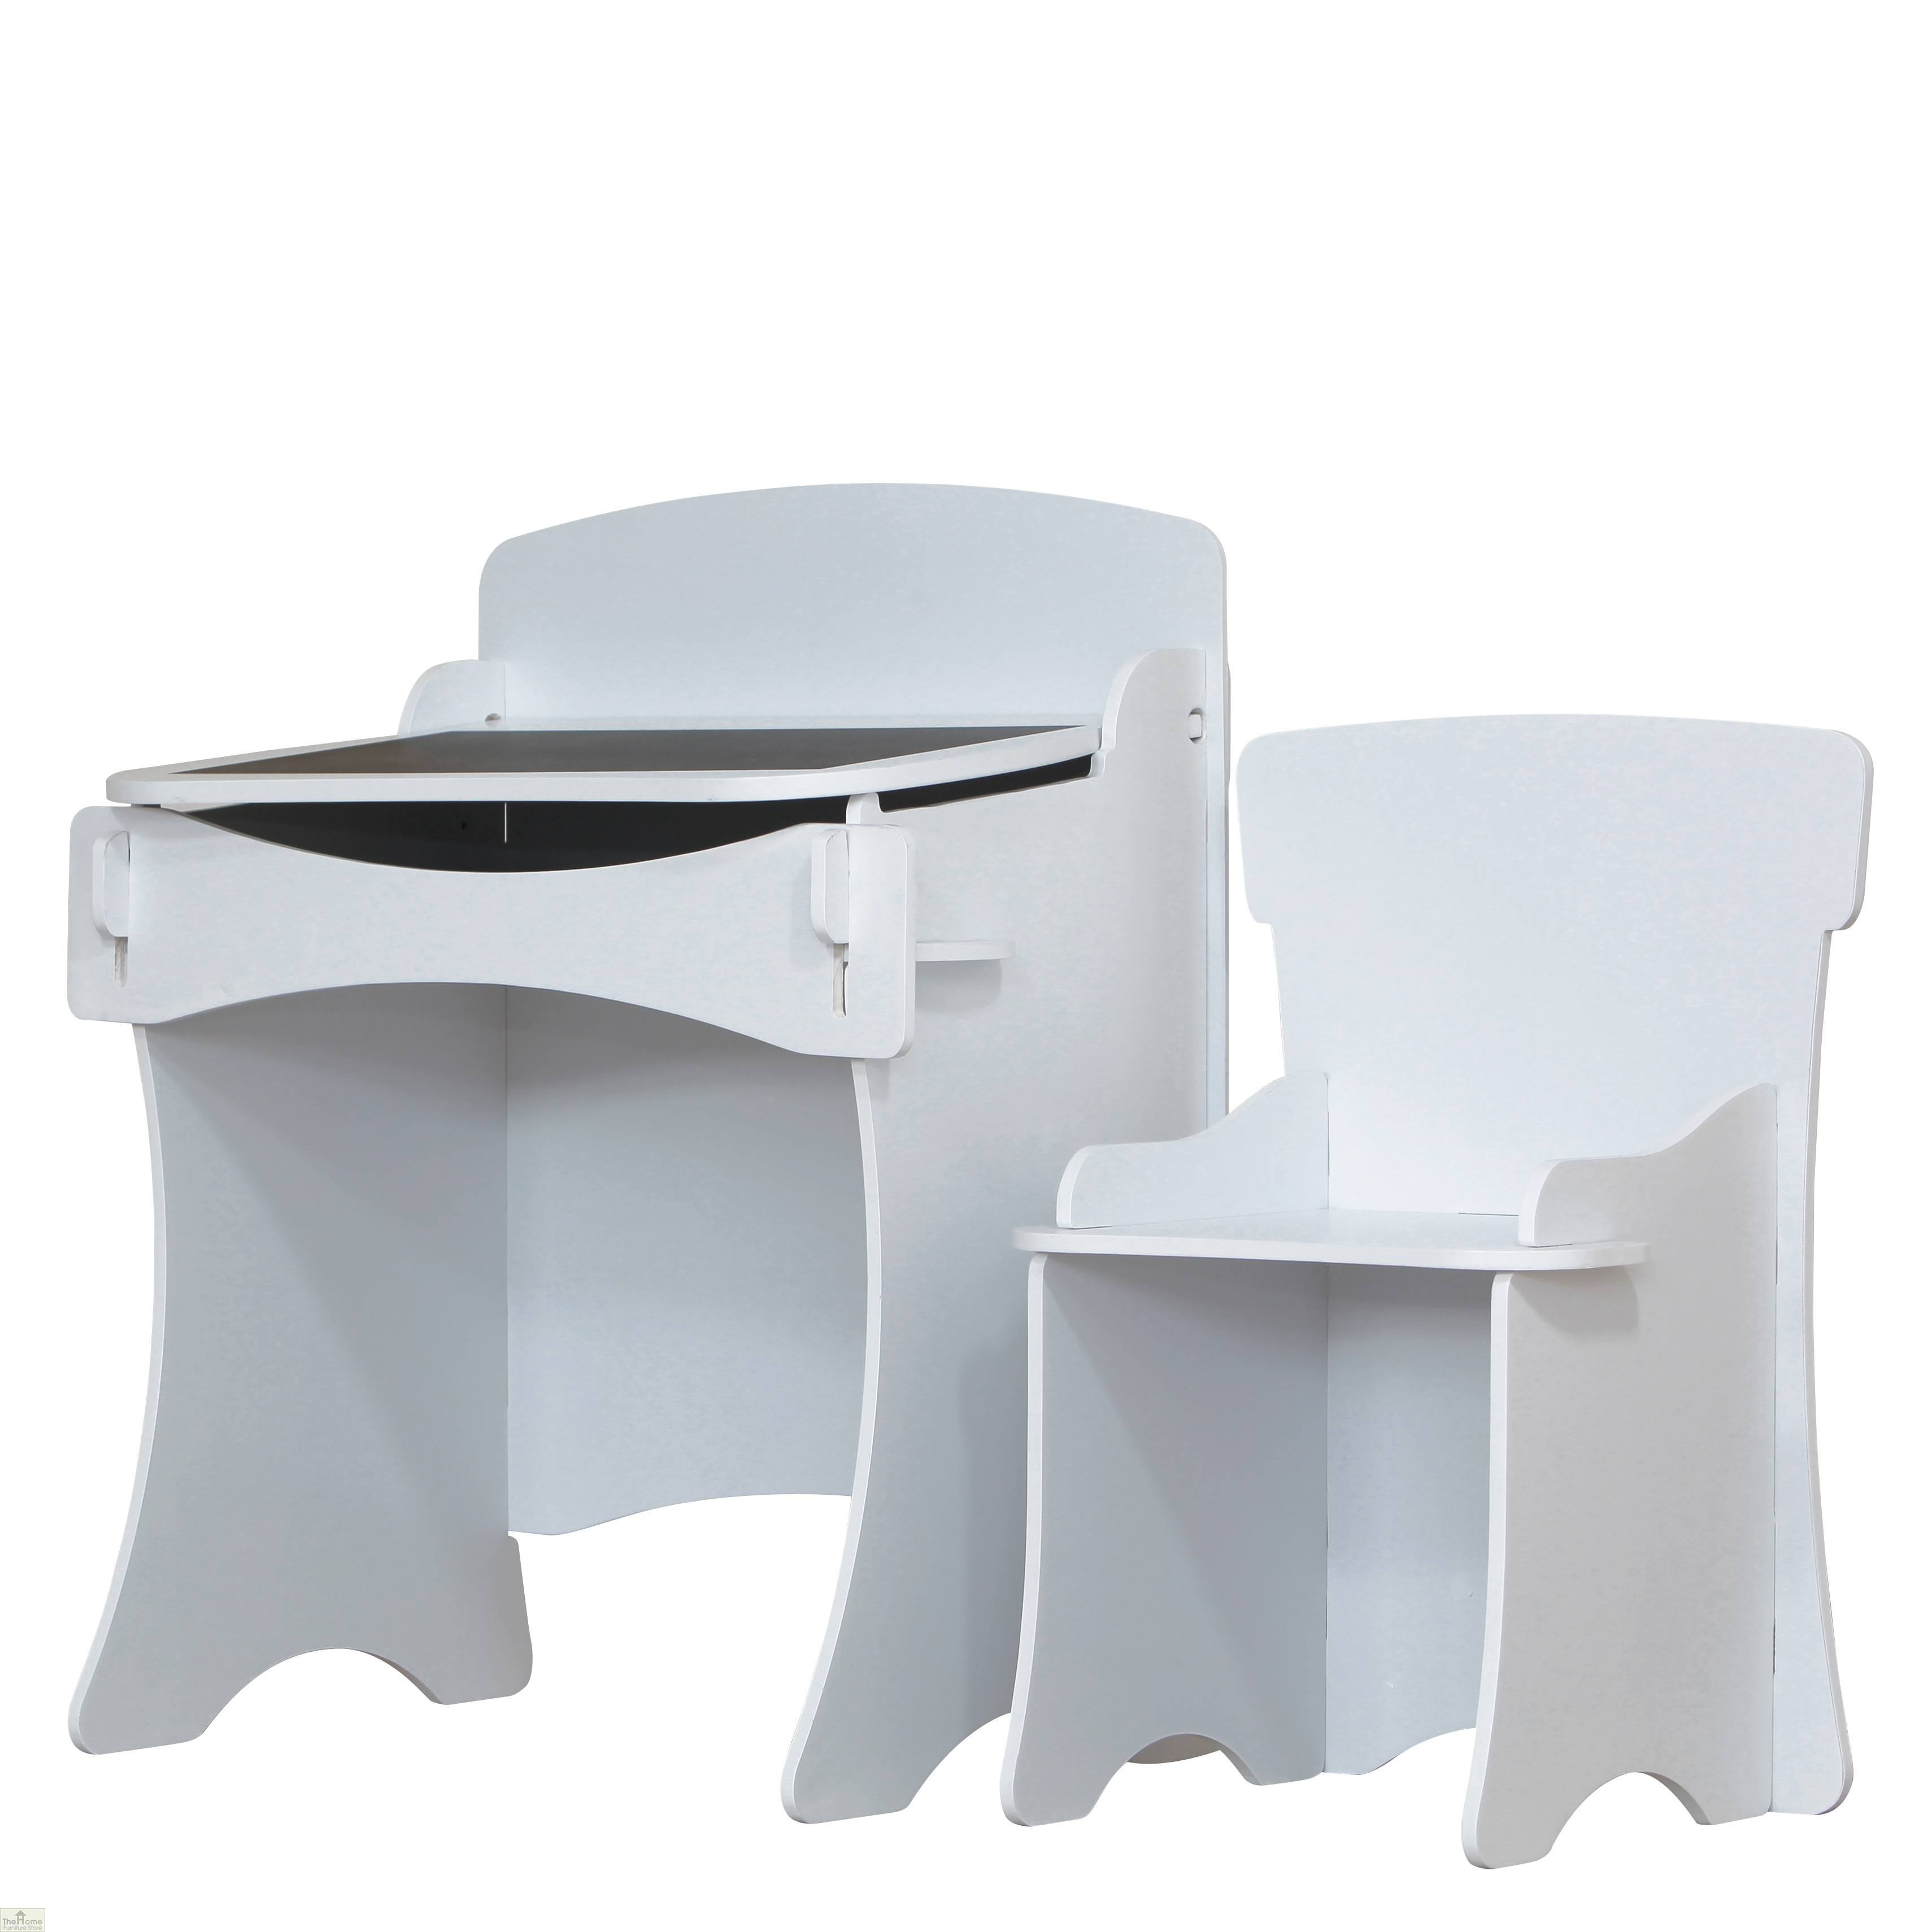 Childrens desk and chair the home furniture store Home furniture outlet uk